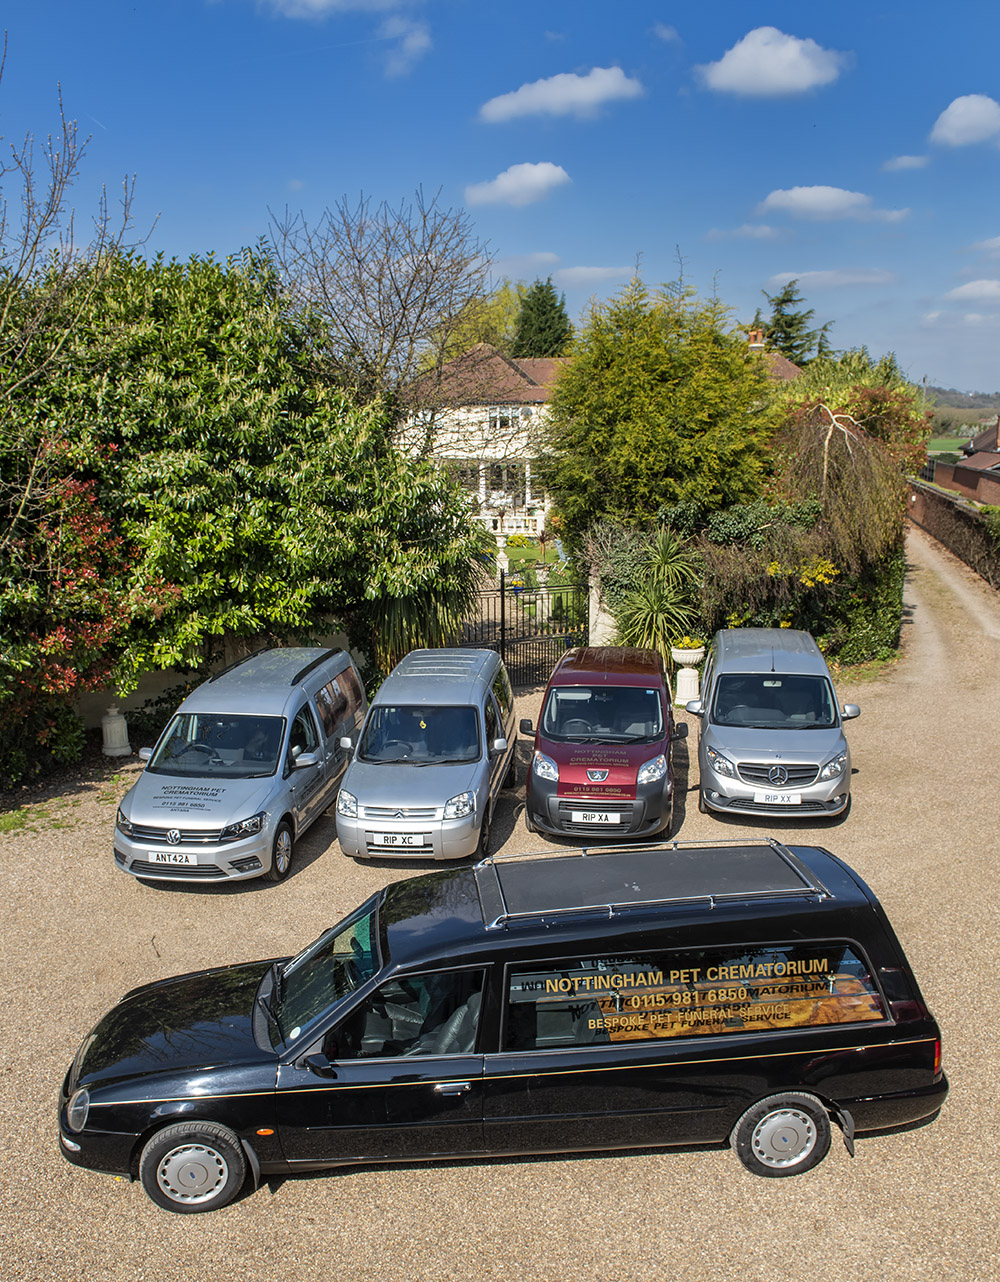 Our fleet of 5 multi-purpose vehicles including a traditional hearse